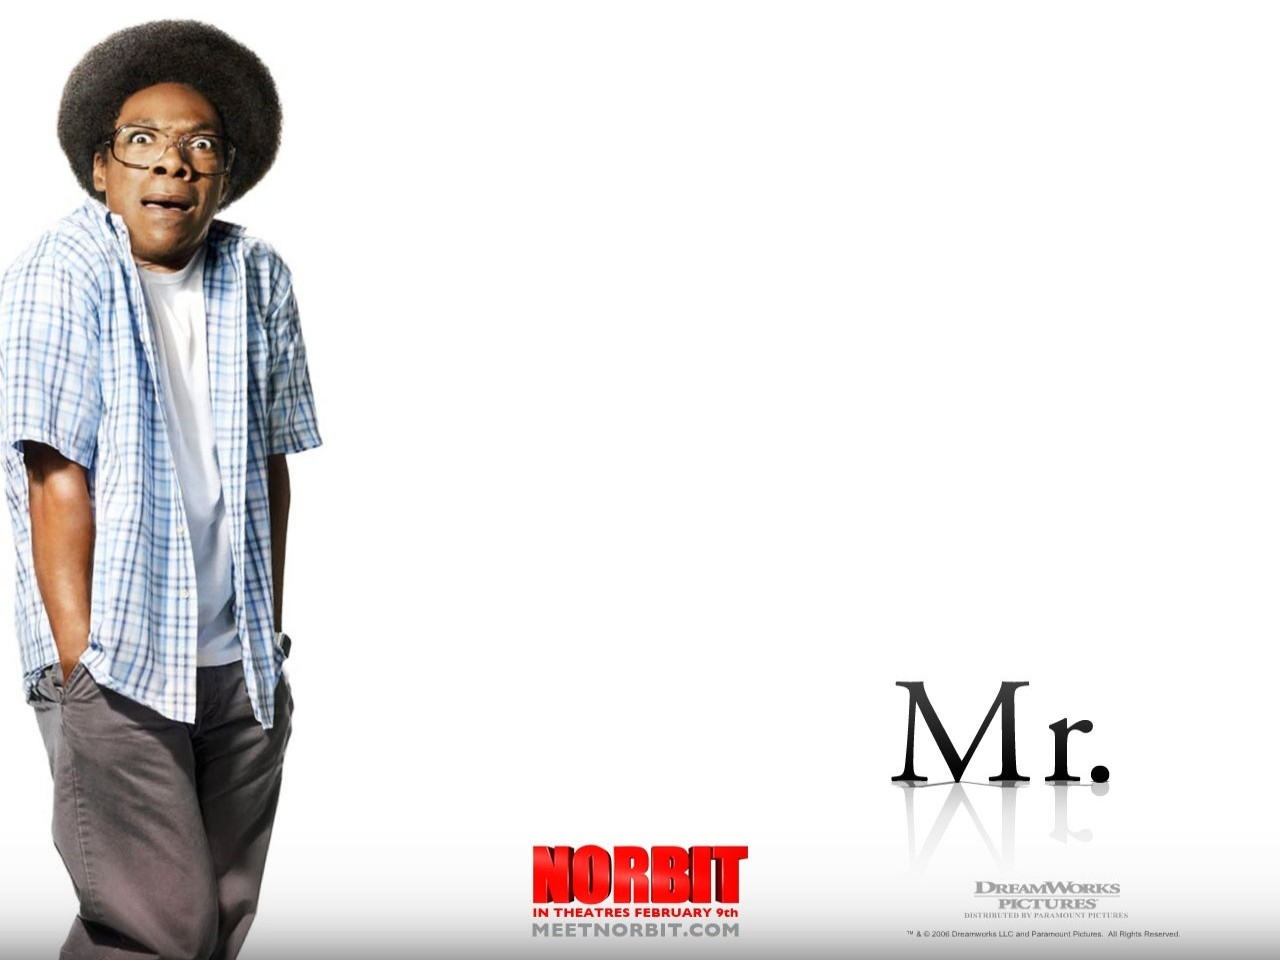 Wallpaper del film Norbit